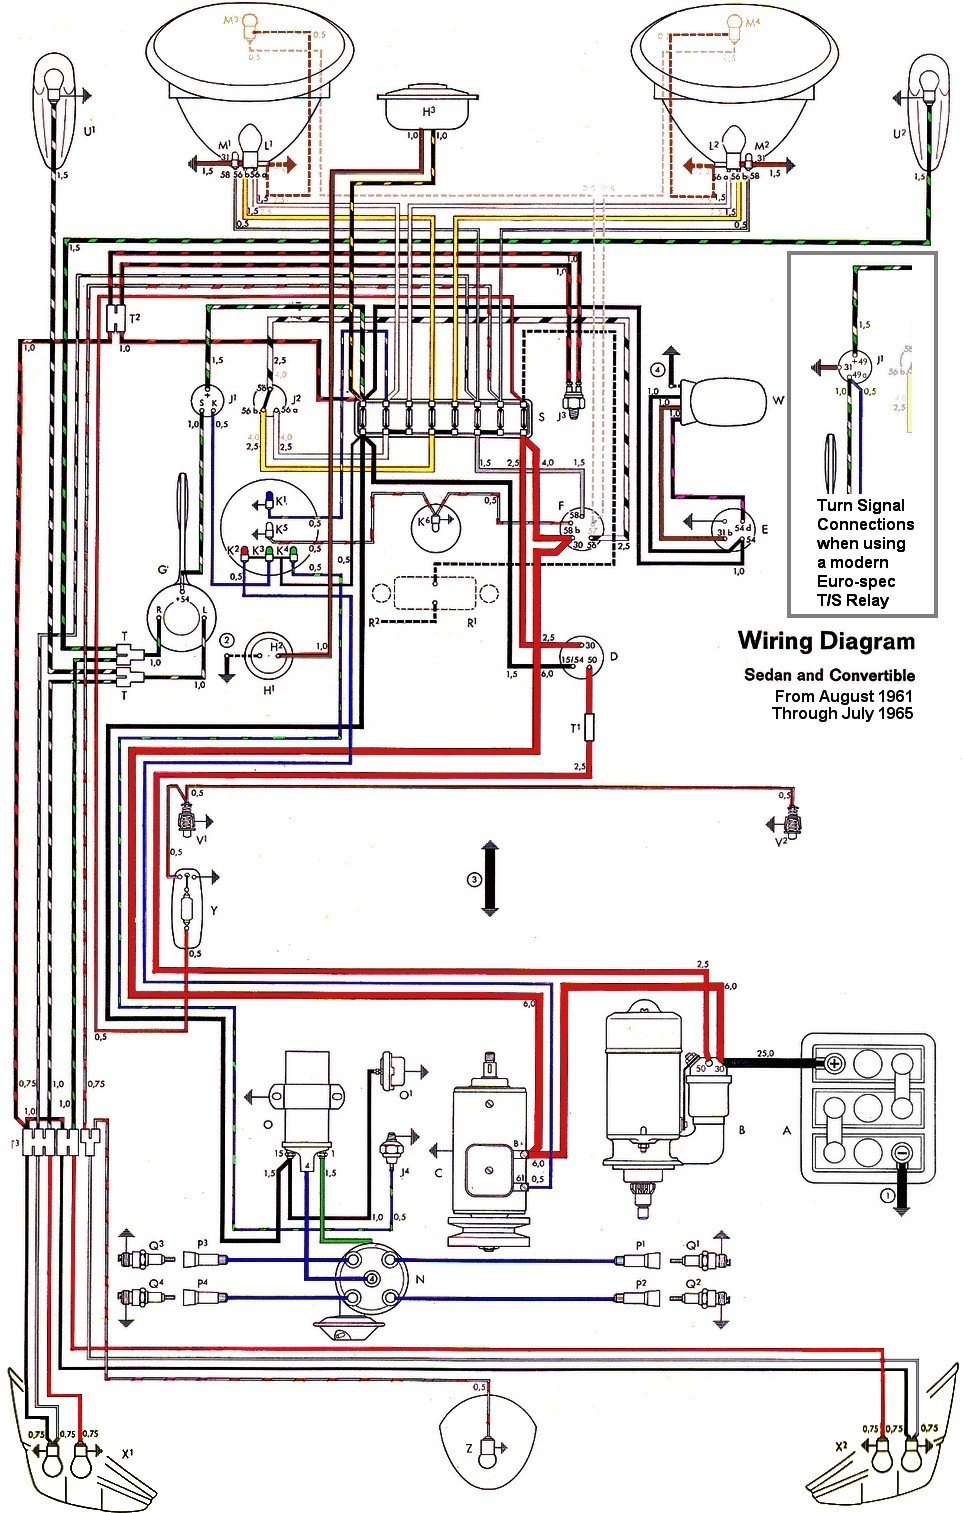 1970 vw beetle fuse box wiring diagram1970 vw beetle fuse box